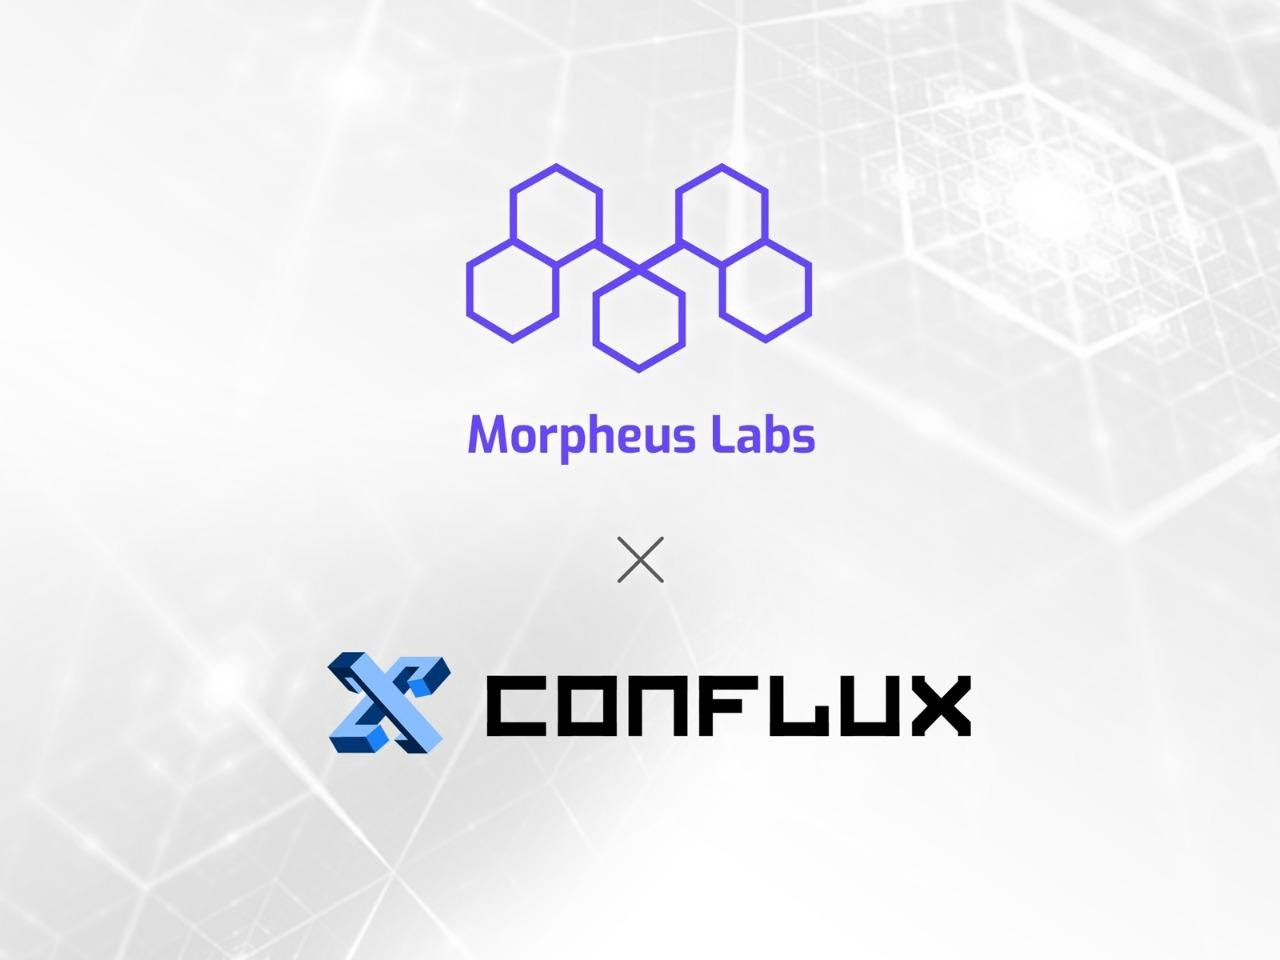 Morpheus Labs and Conflux Network formed a partnership to foster educational and commercial opportunities